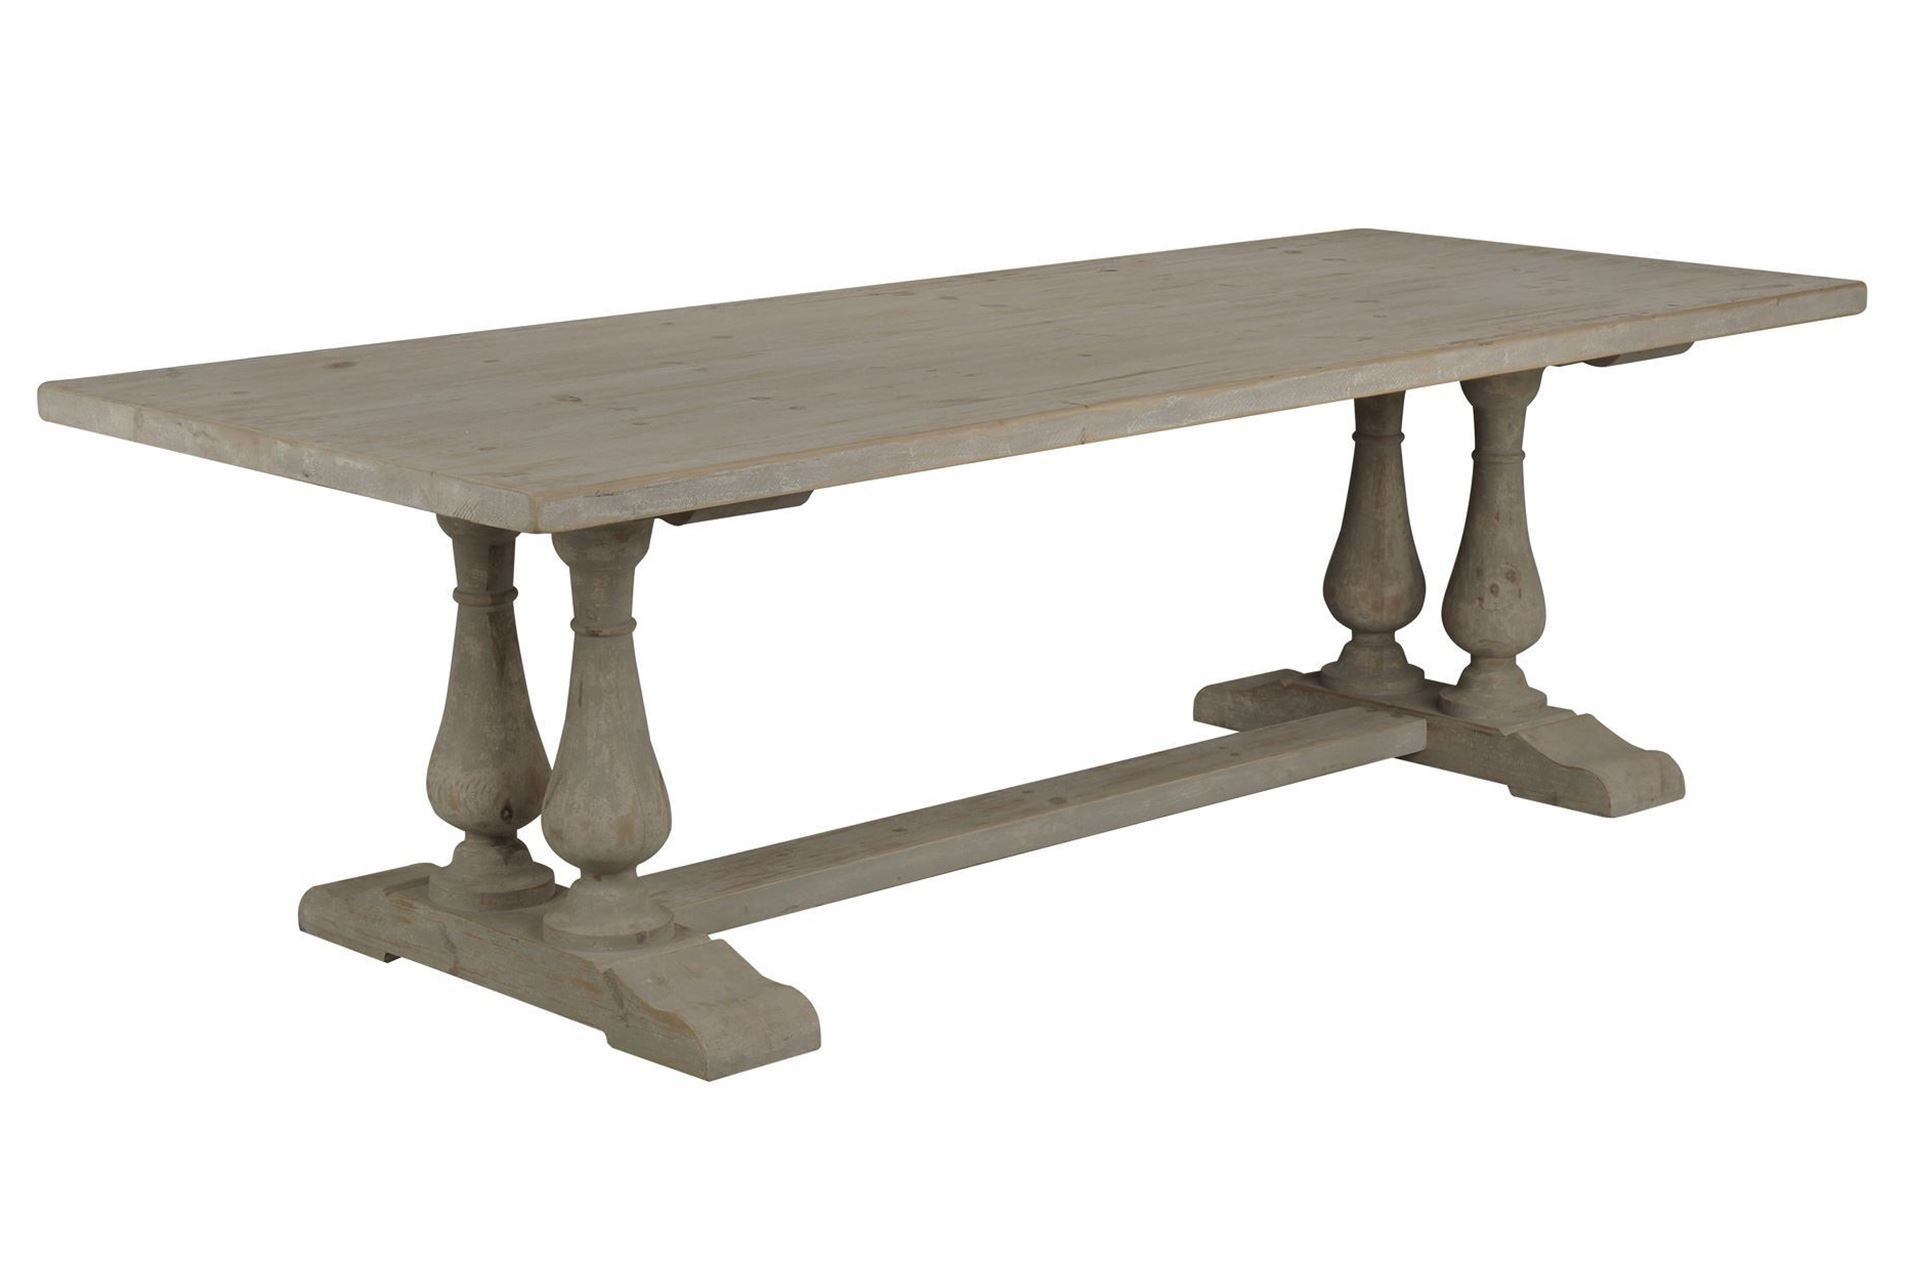 Magnolia Home Shop Floor Dining Table With Iron Trestlejoanna Throughout Latest Magnolia Home Shop Floor Dining Tables With Iron Trestle (Image 16 of 20)